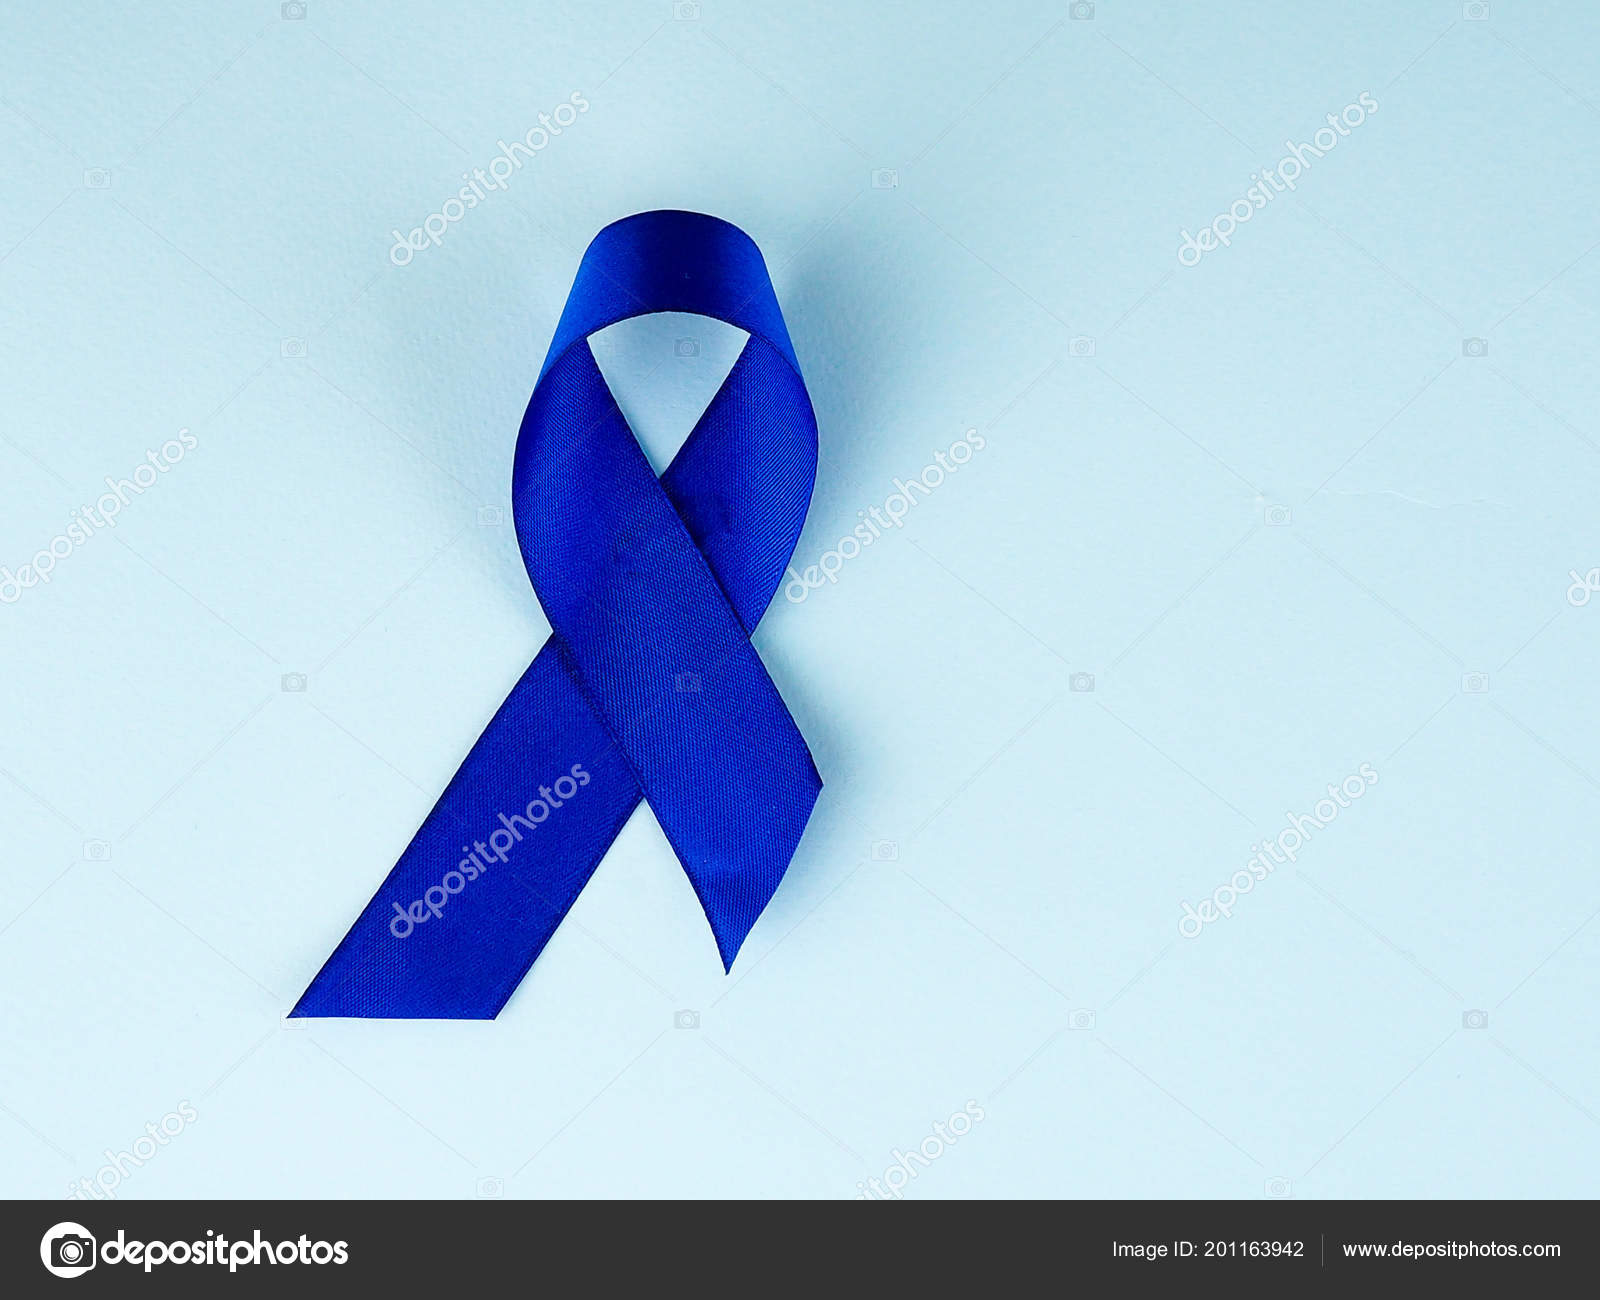 Blue Ribbon Awareness Colon Cancer Colorectal Cancer Child Abuse Awareness Stock Photo C Byallasaa 201163942